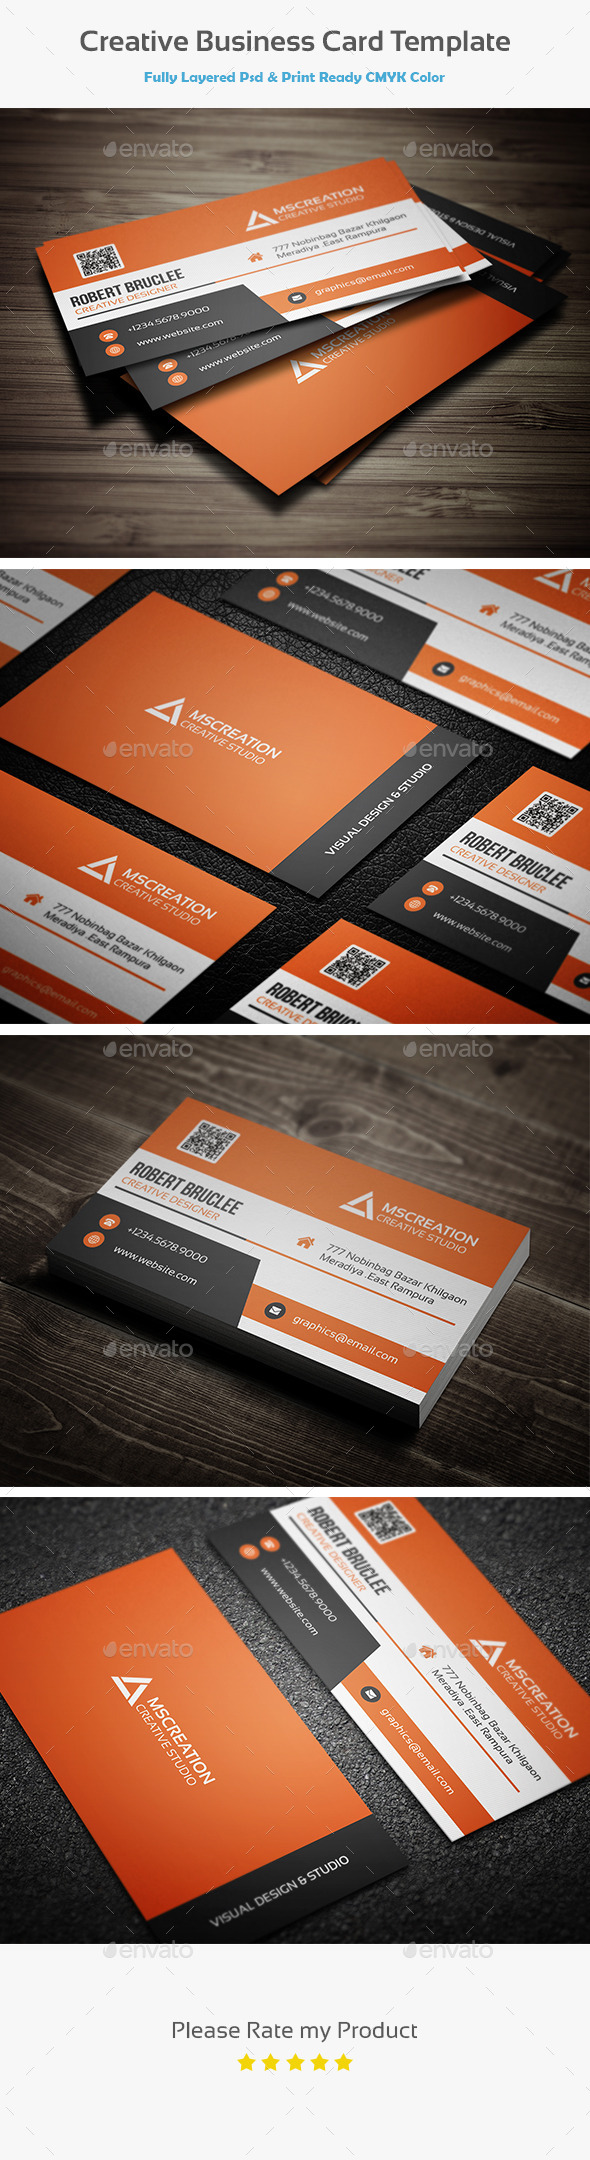 GraphicRiver Creative Business Card Template 10585907